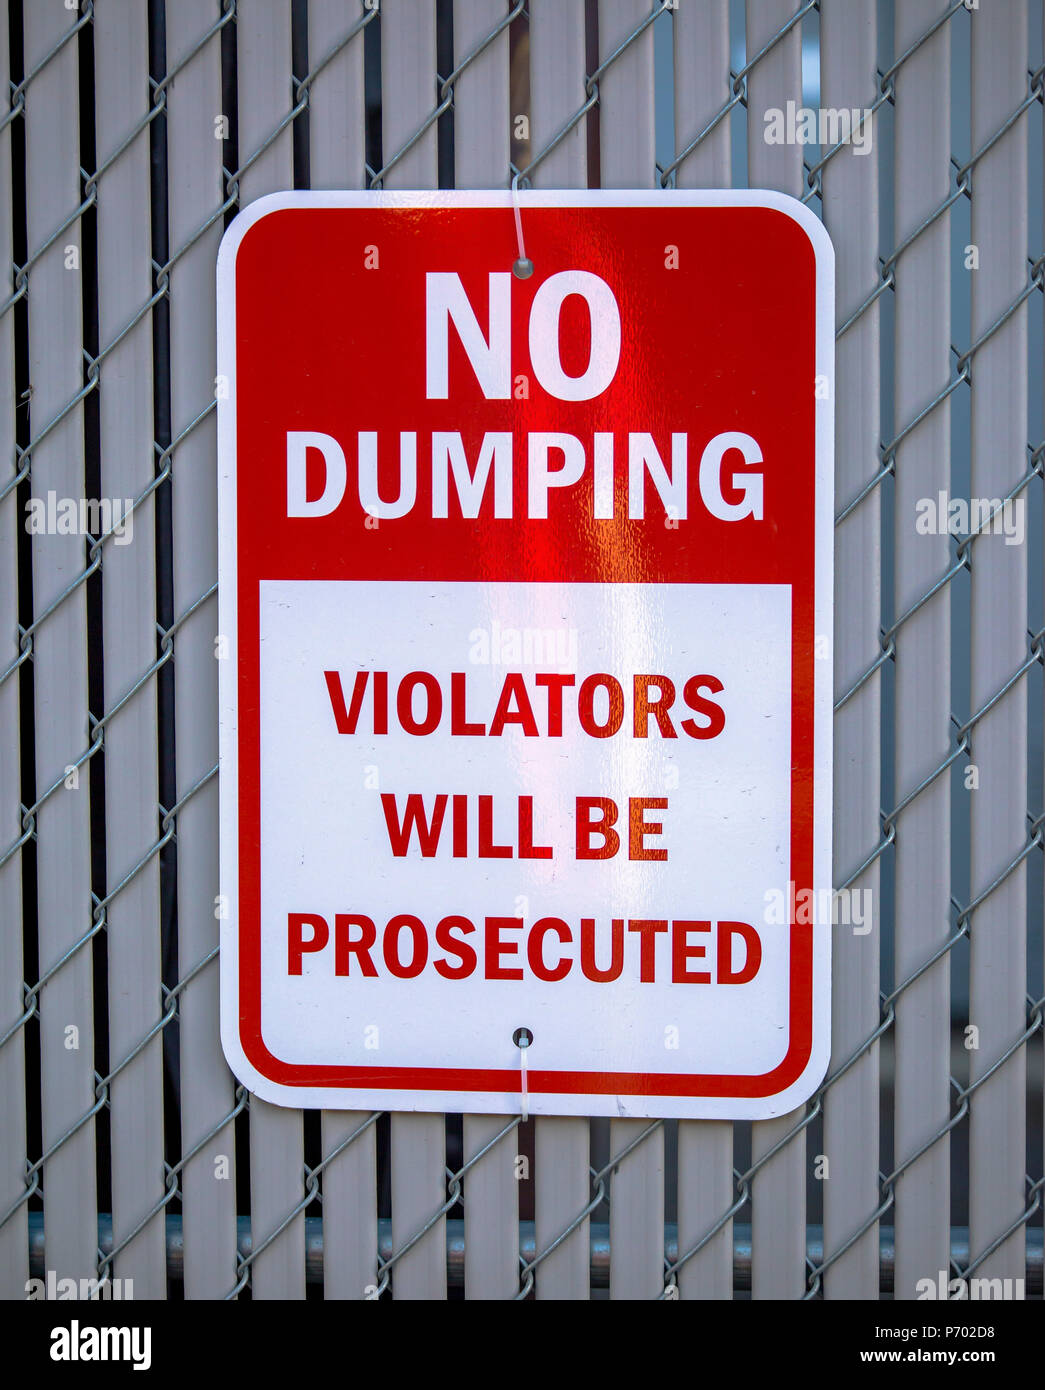 No dumping violators will be prosecuted sign - Stock Image